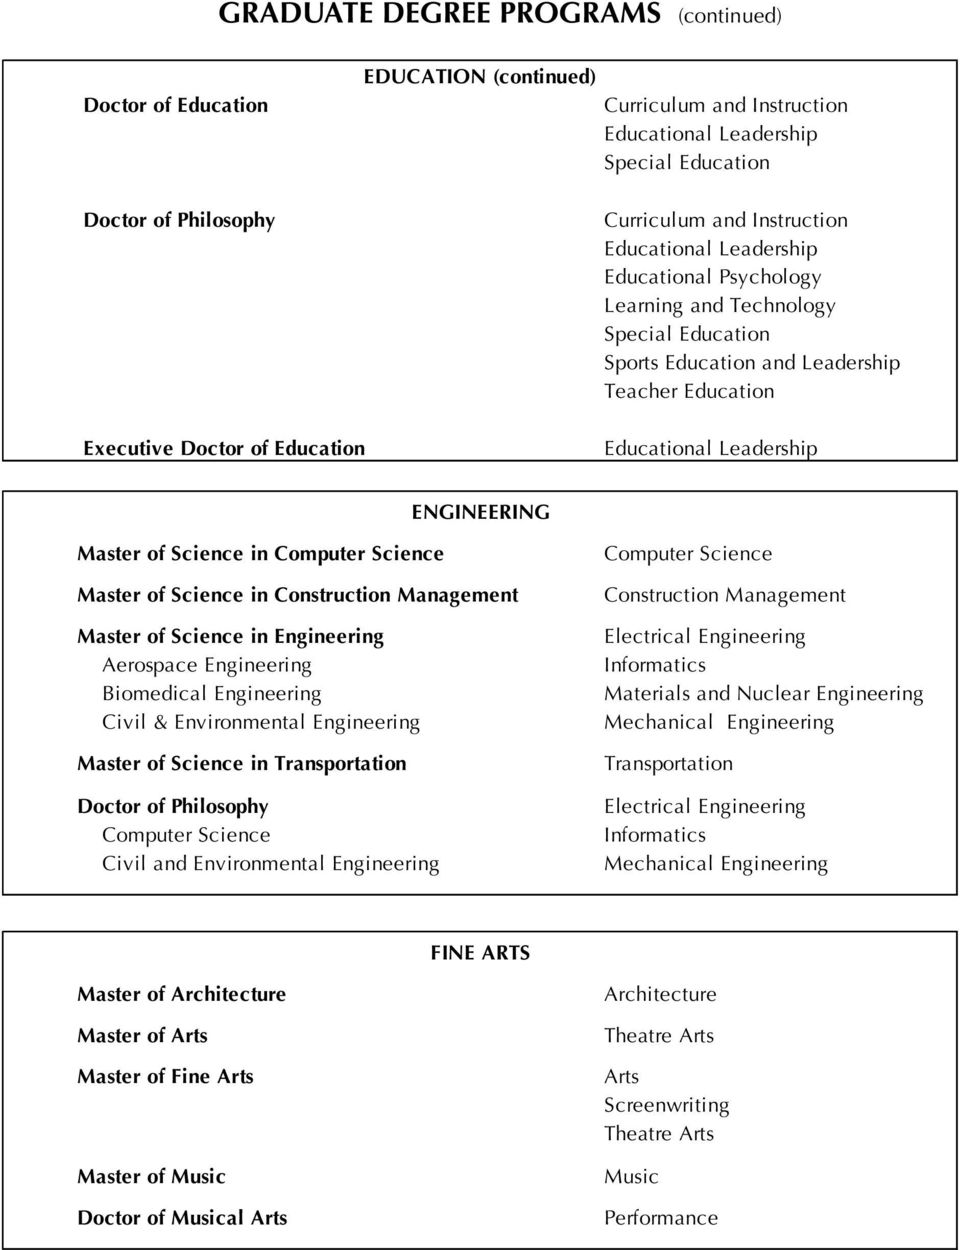 Engineering Computer Science Construction Management Electrical Engineering Informatics Materials and Nuclear Engineering Mechanical Engineering Transportation Electrical Engineering